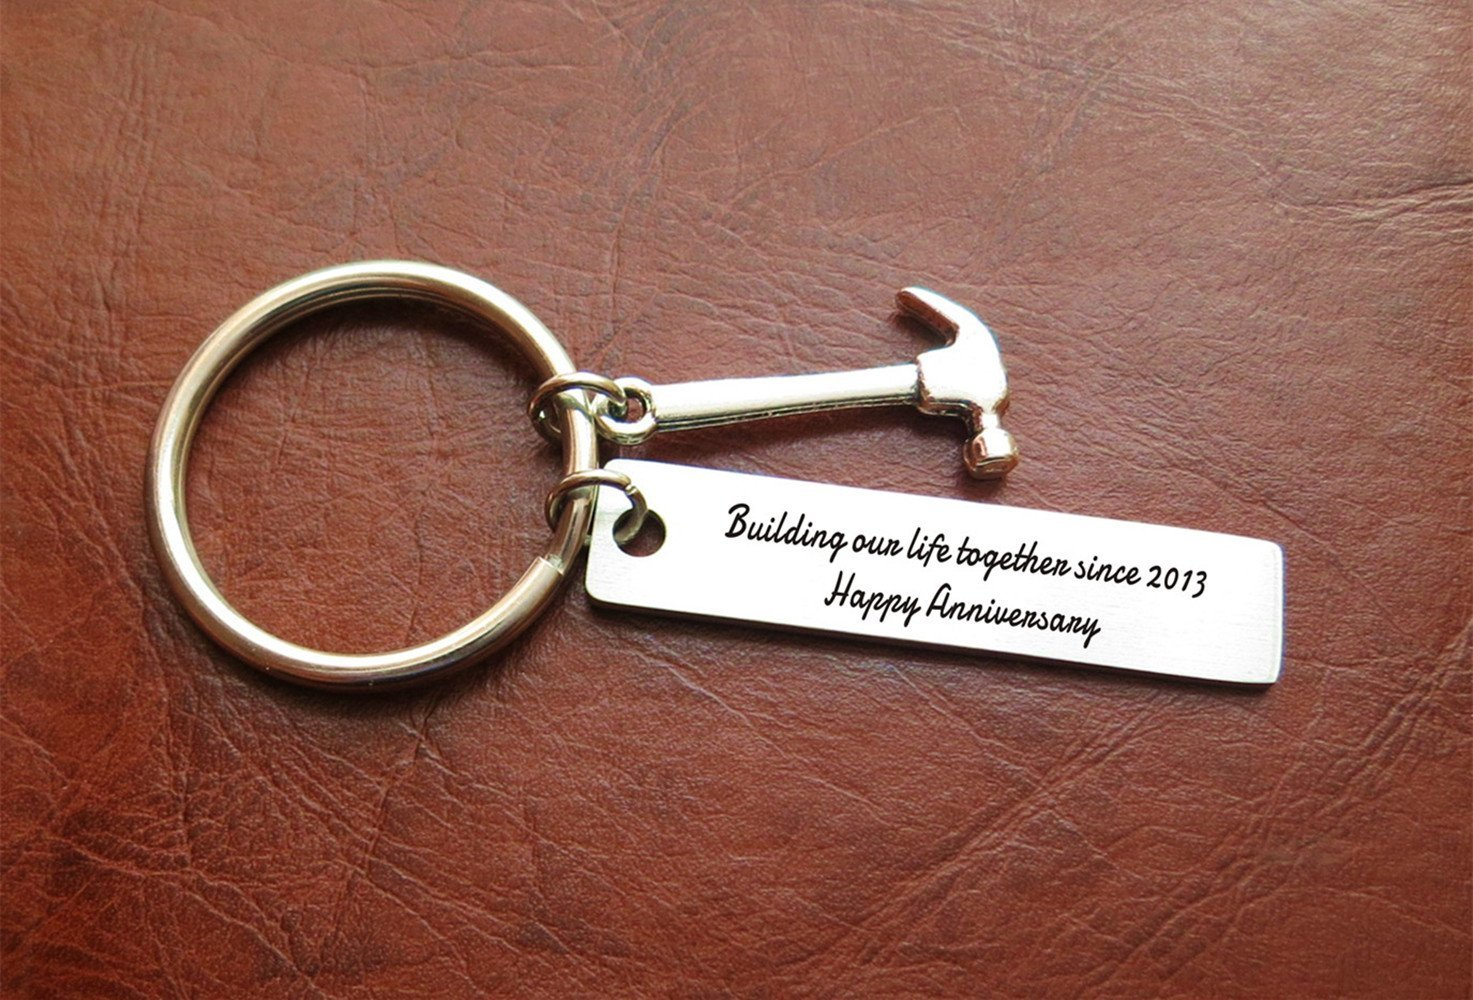 Building Our Life Together Anniversary Gifts - 5 Year Anniversary Key Chain Gift for Him or Her - Happy 5th Wedding Anniversary